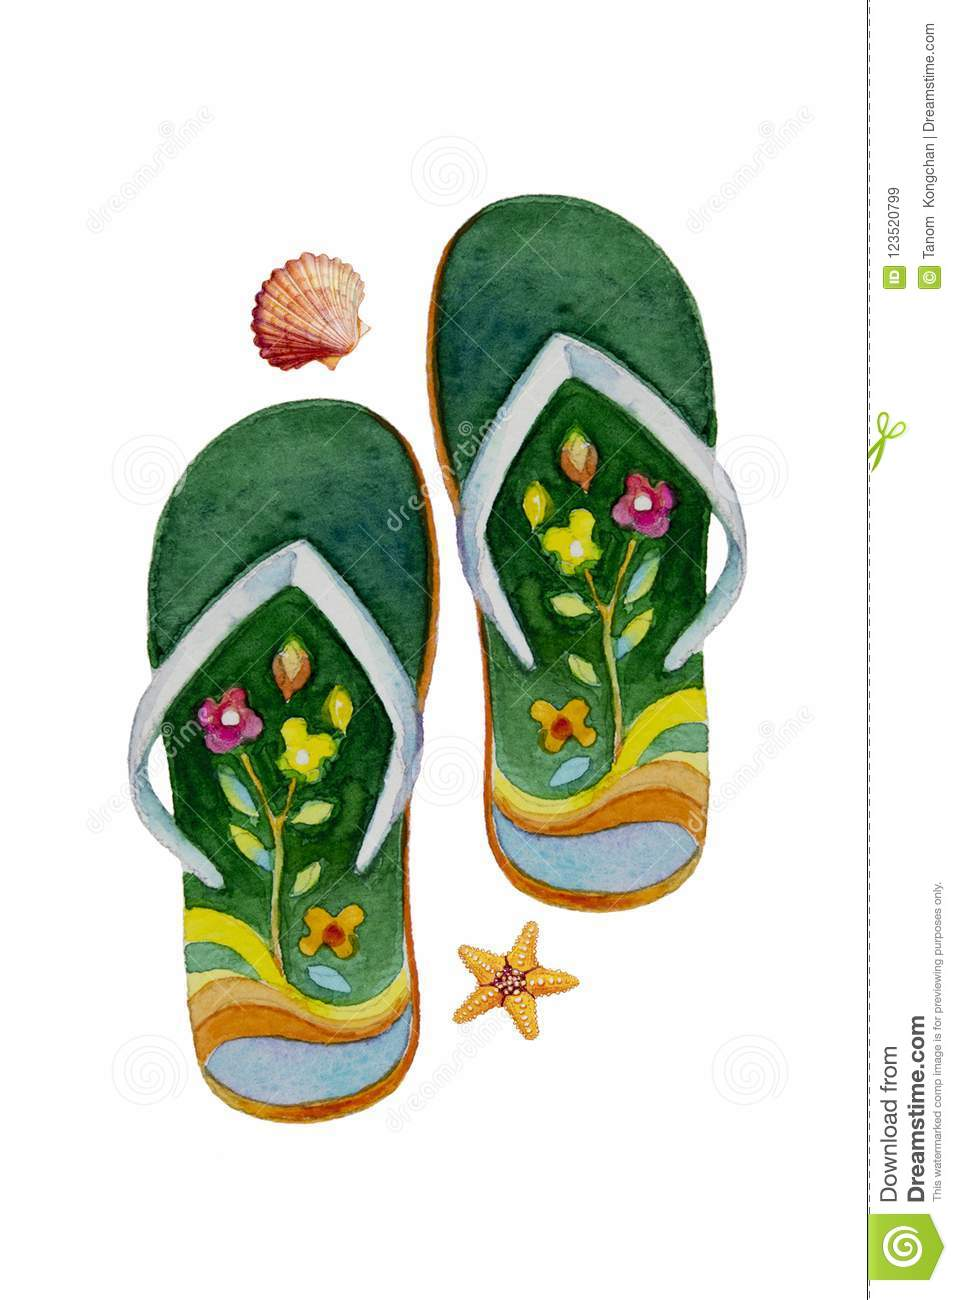 0e9201ce36cbd Watercolor painting illustration of pair of sandals